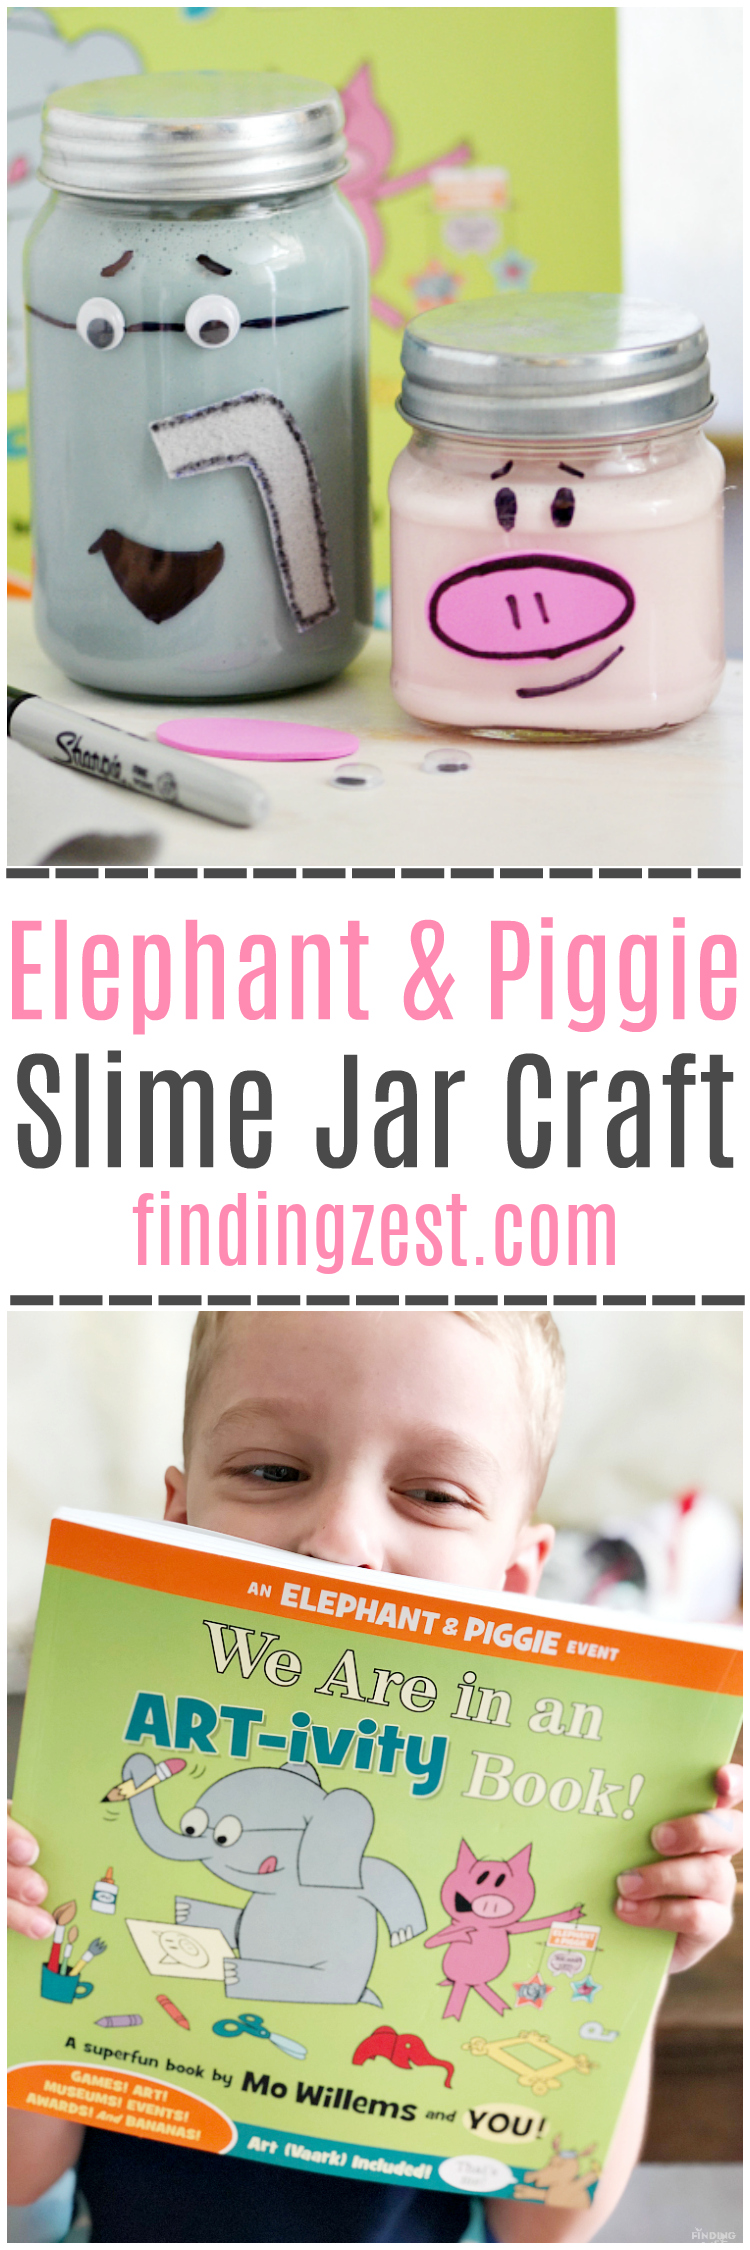 Check out the fun Elephant and Piggie Slime Jars craft we created, inspired by the Elephant and Piggie ART-ivity book by Mo Willems!